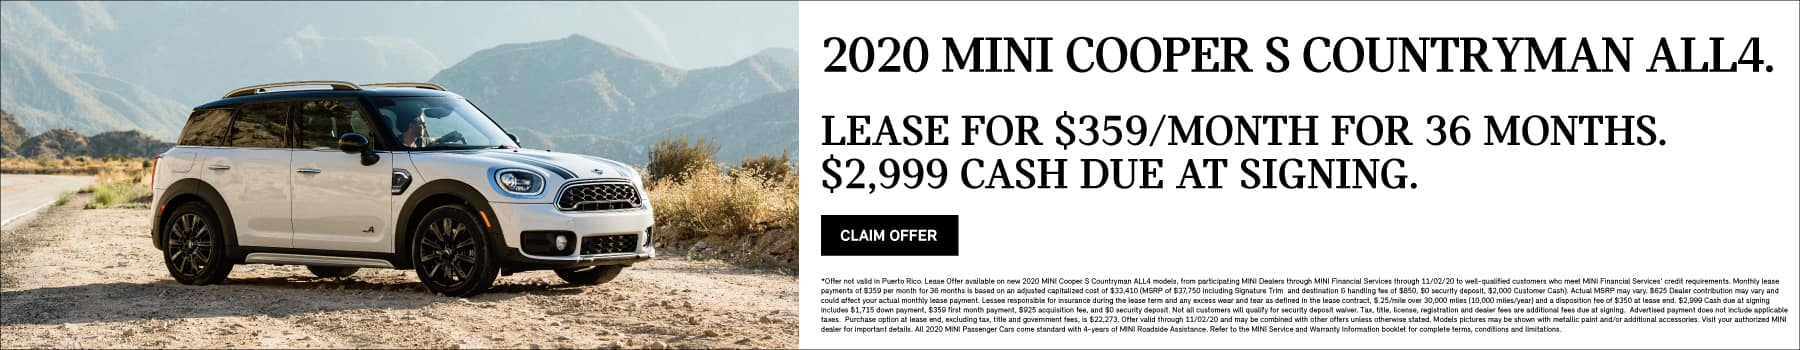 lease a 2020 mini cooper s countryman all4 for $359 per month.